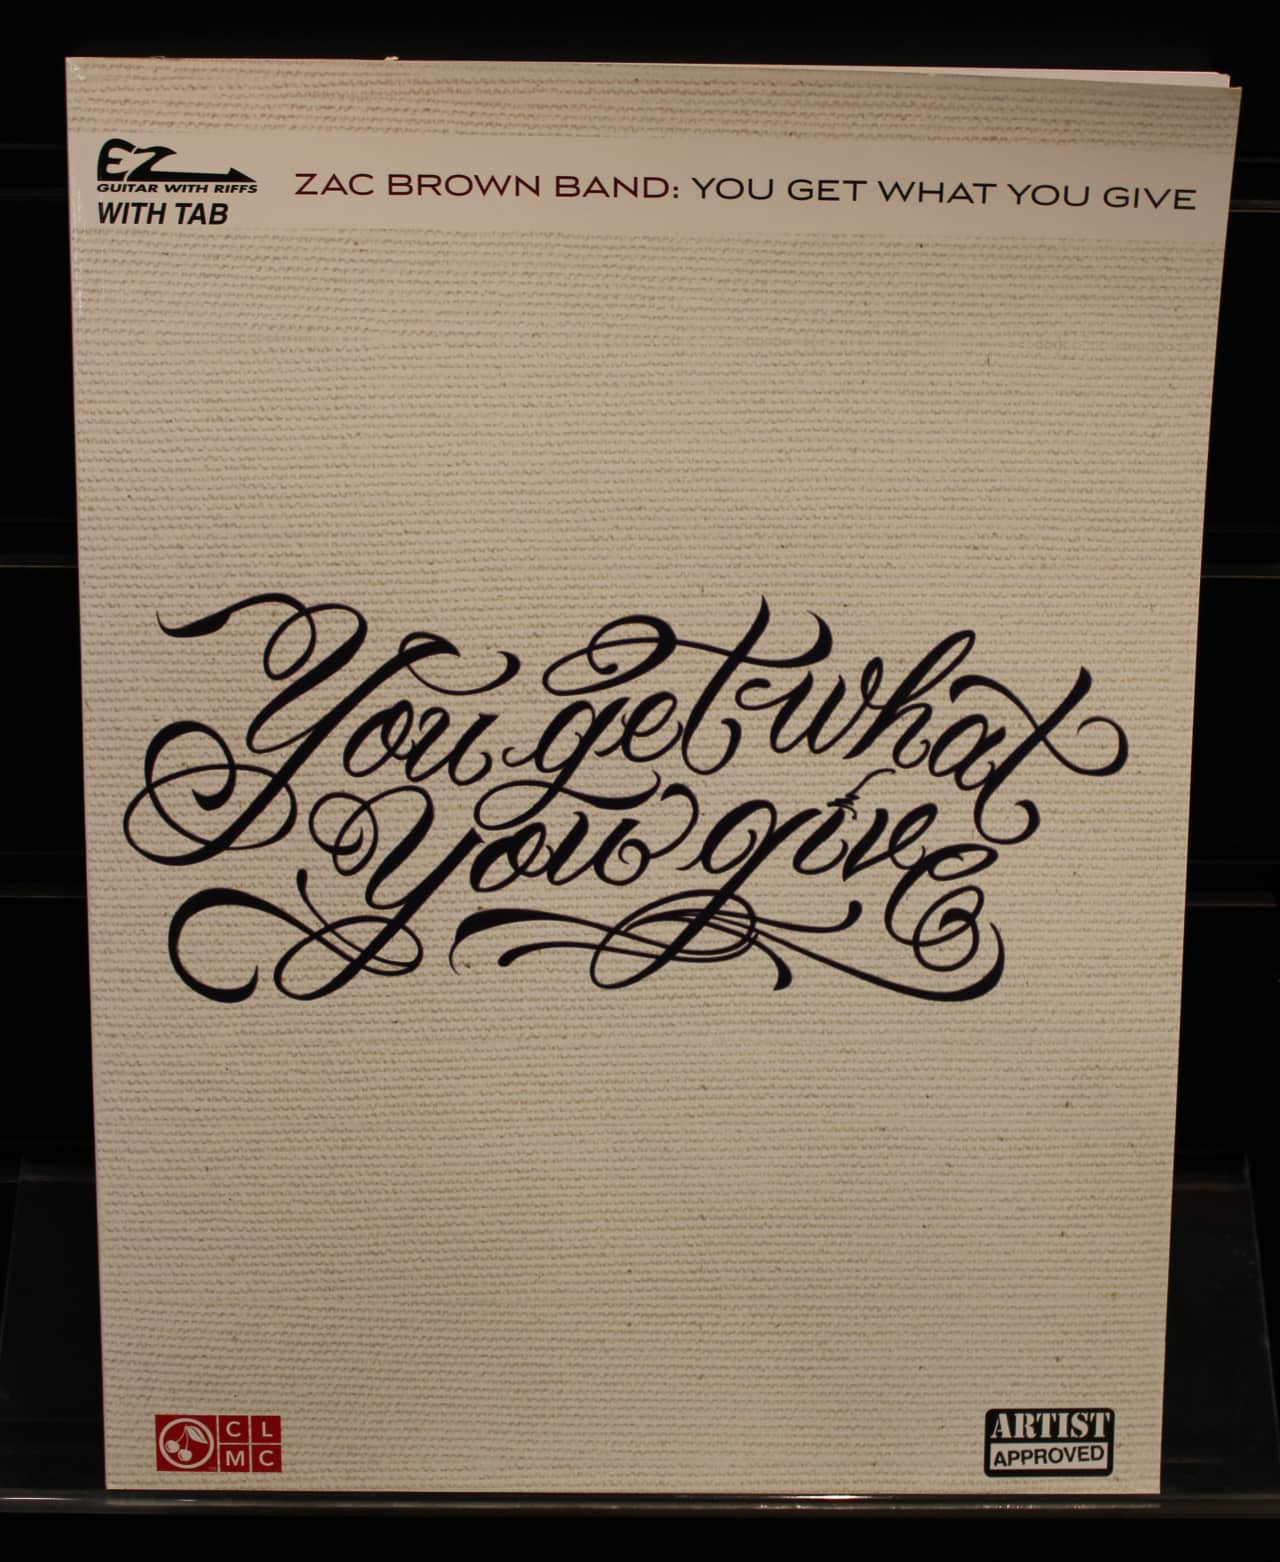 Zac Brown Band You Get What You Give Ez Guitar With Riffs Reverb